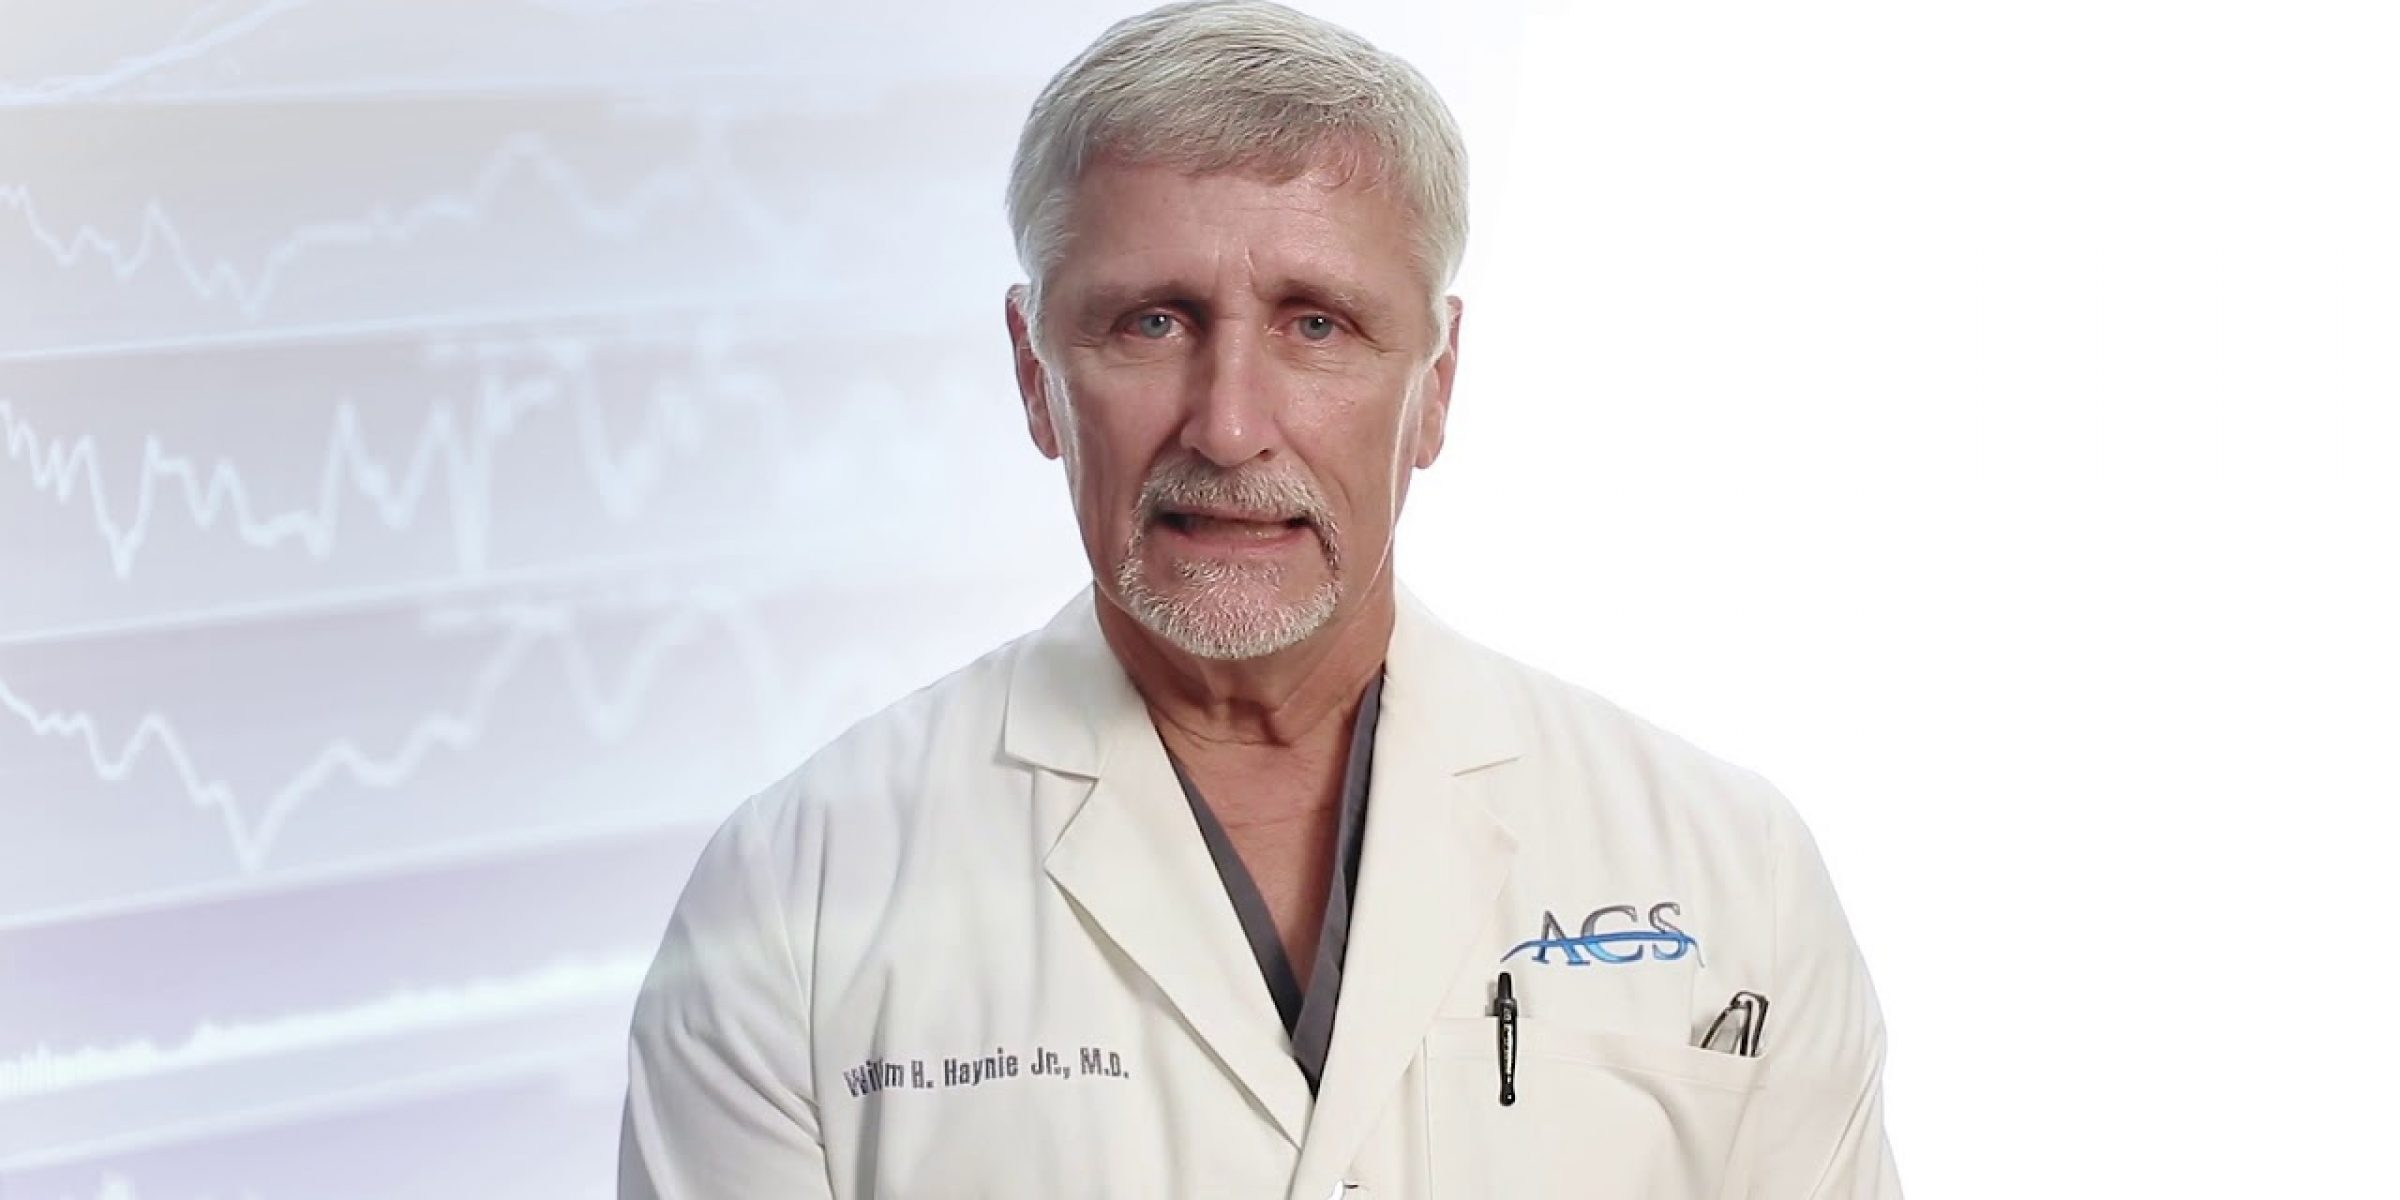 acs, advanced cardiovascular specialists, cardiology, shreveport cardiology, louisiana cardiology, haynie shreveport, haynie cardiology, atherosclerosis, coronary artery disease, what is coronary artery disease, what is atherosclerosis